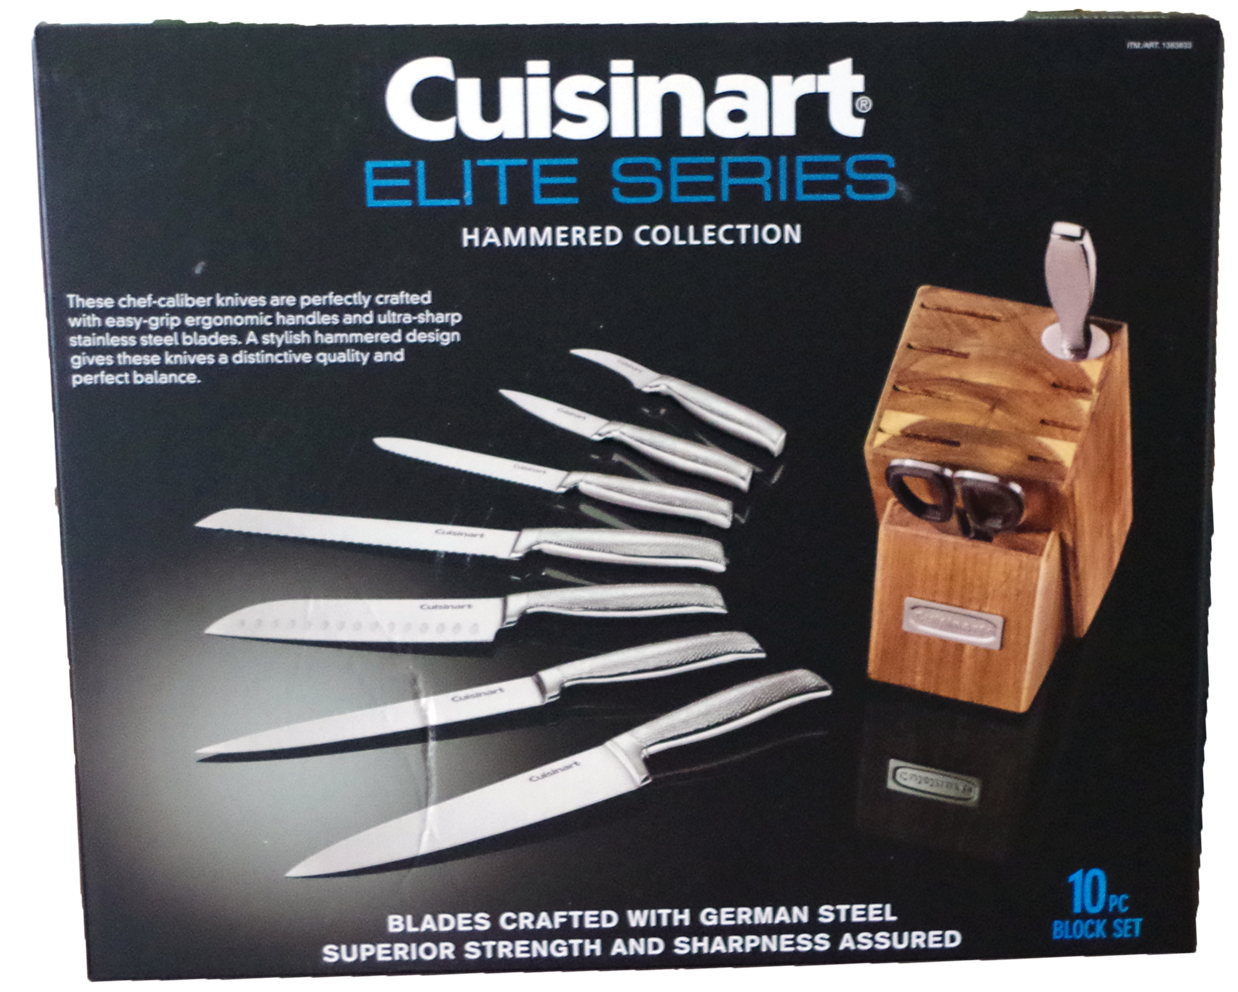 Cuisinart Elite Series hammered collection 10-piece knife with block set